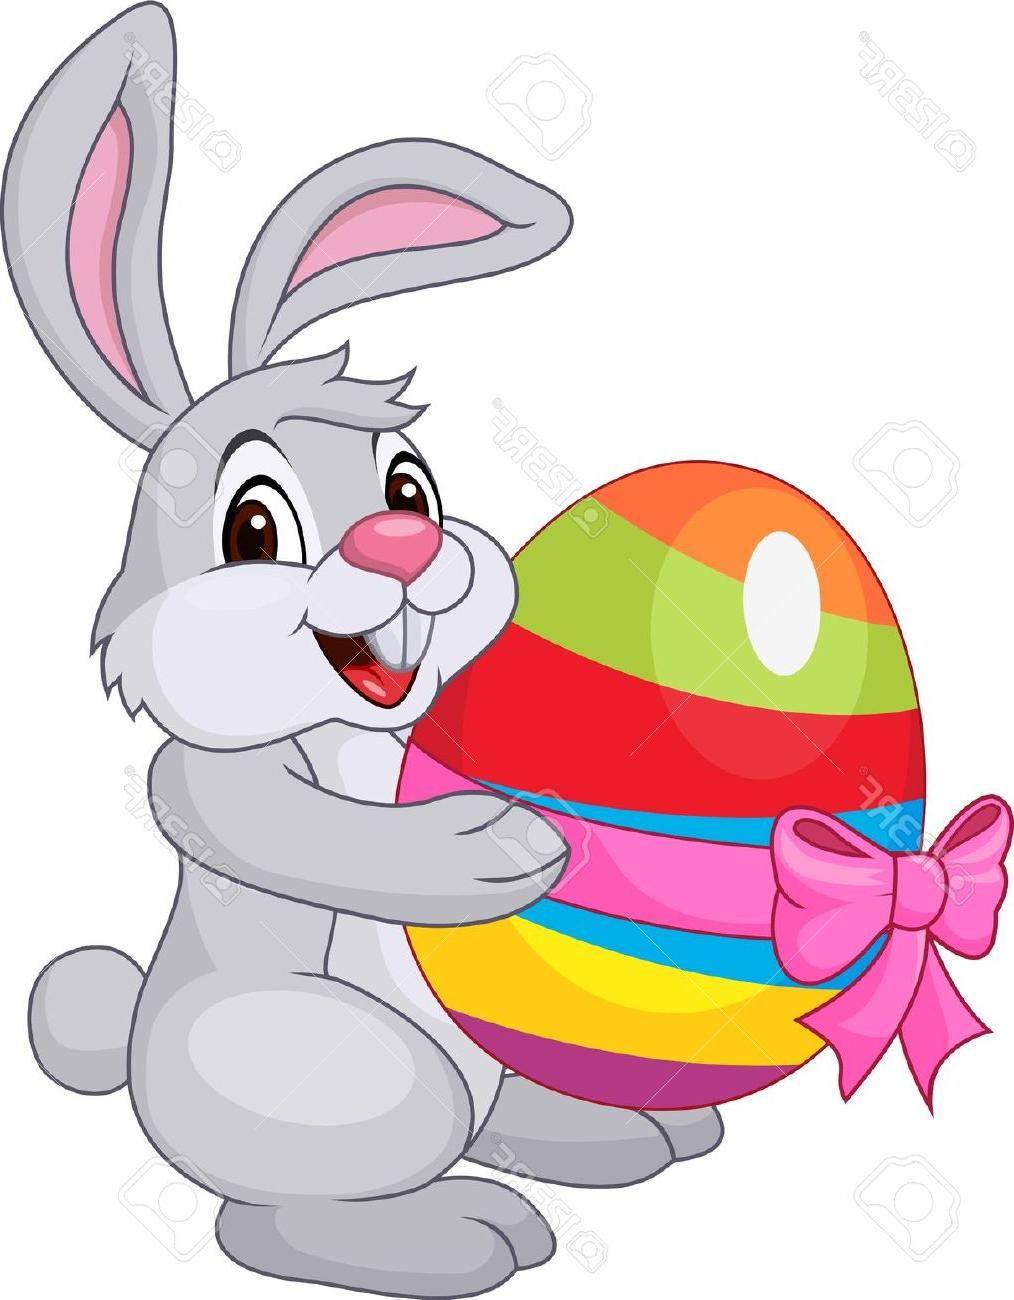 1014x1300 Best Hd Cute Rabbit With Easter Egg Stock Vector Bunny Cartoon